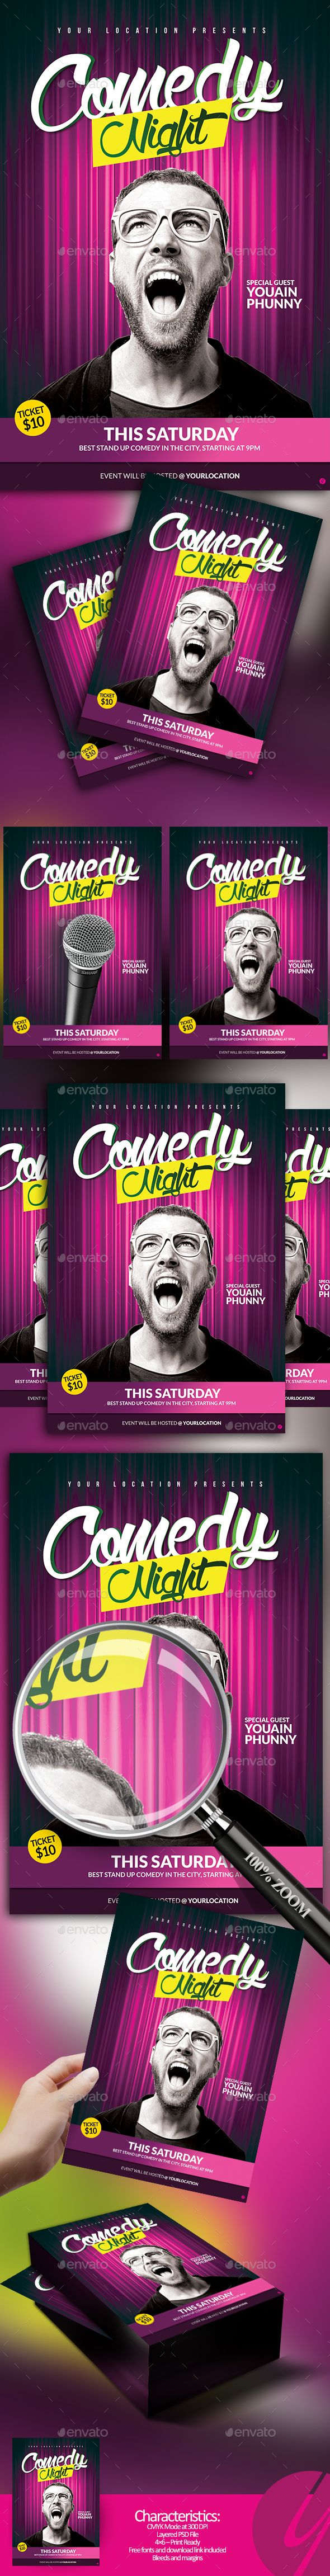 Comedy Night Flyer Template PSD